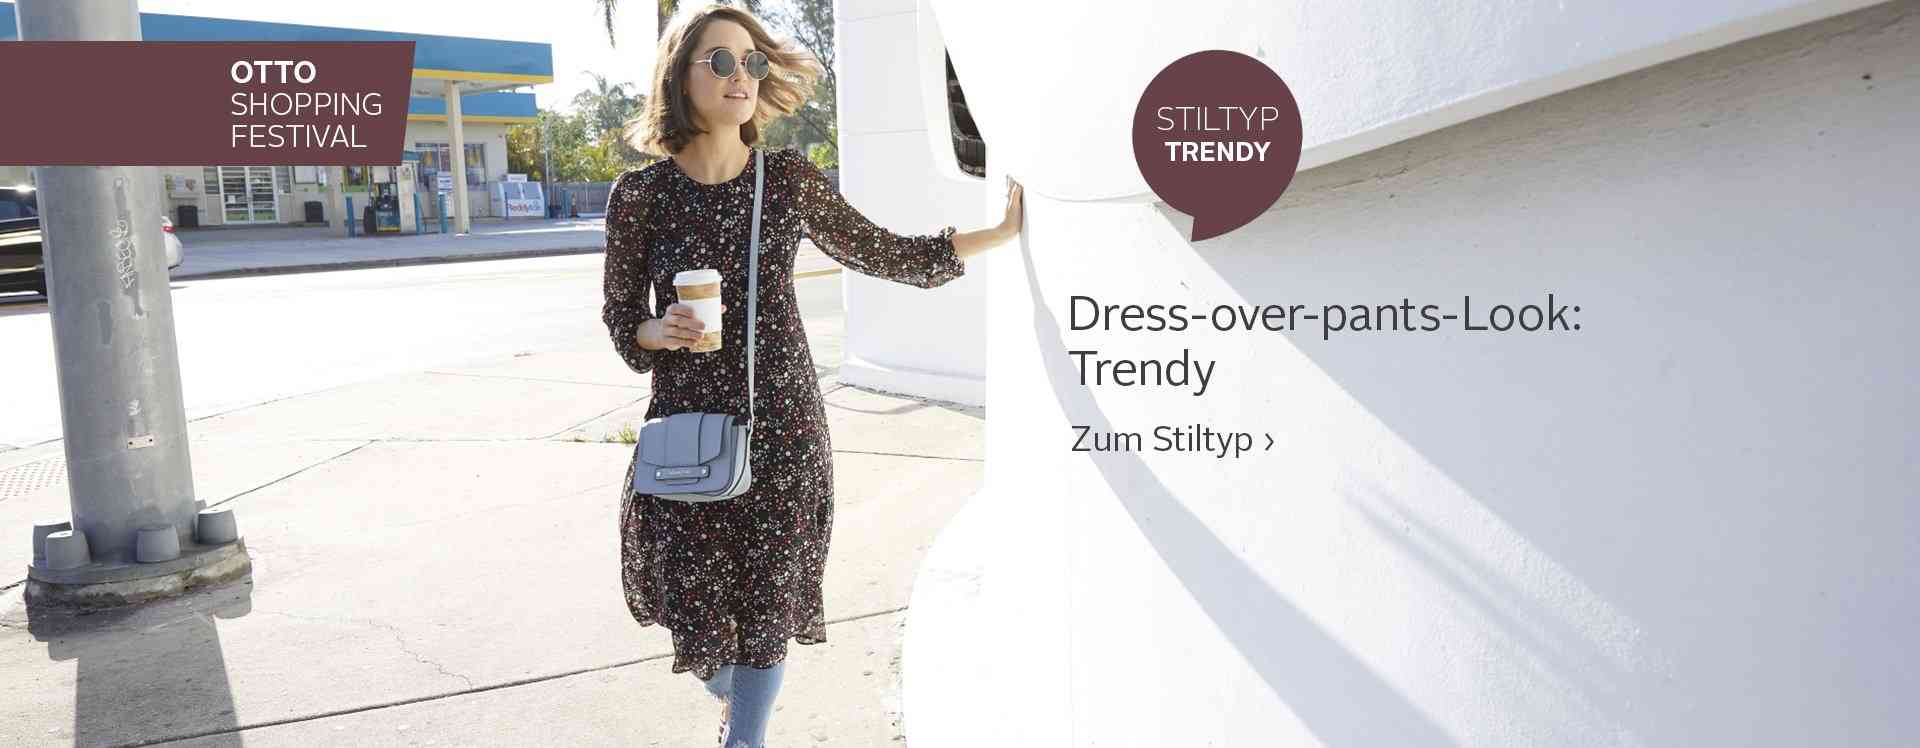 Stiltyp: Trendy